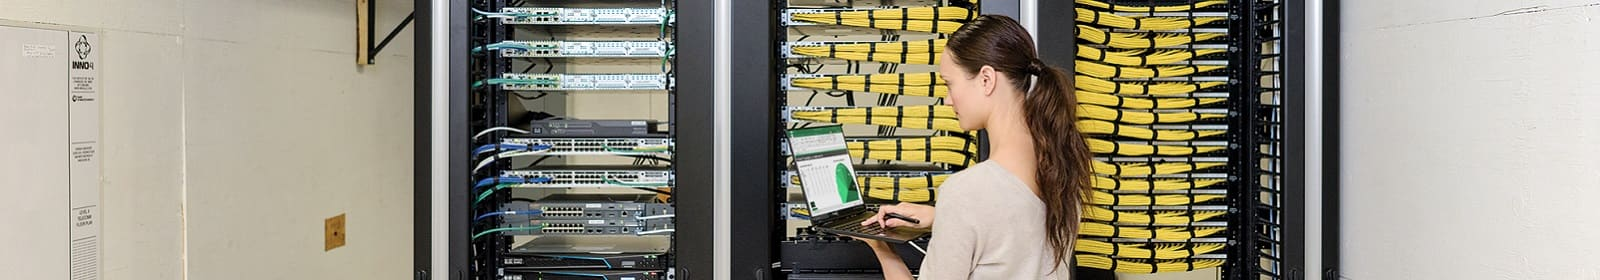 A female IT employee analyzes data in front of a server